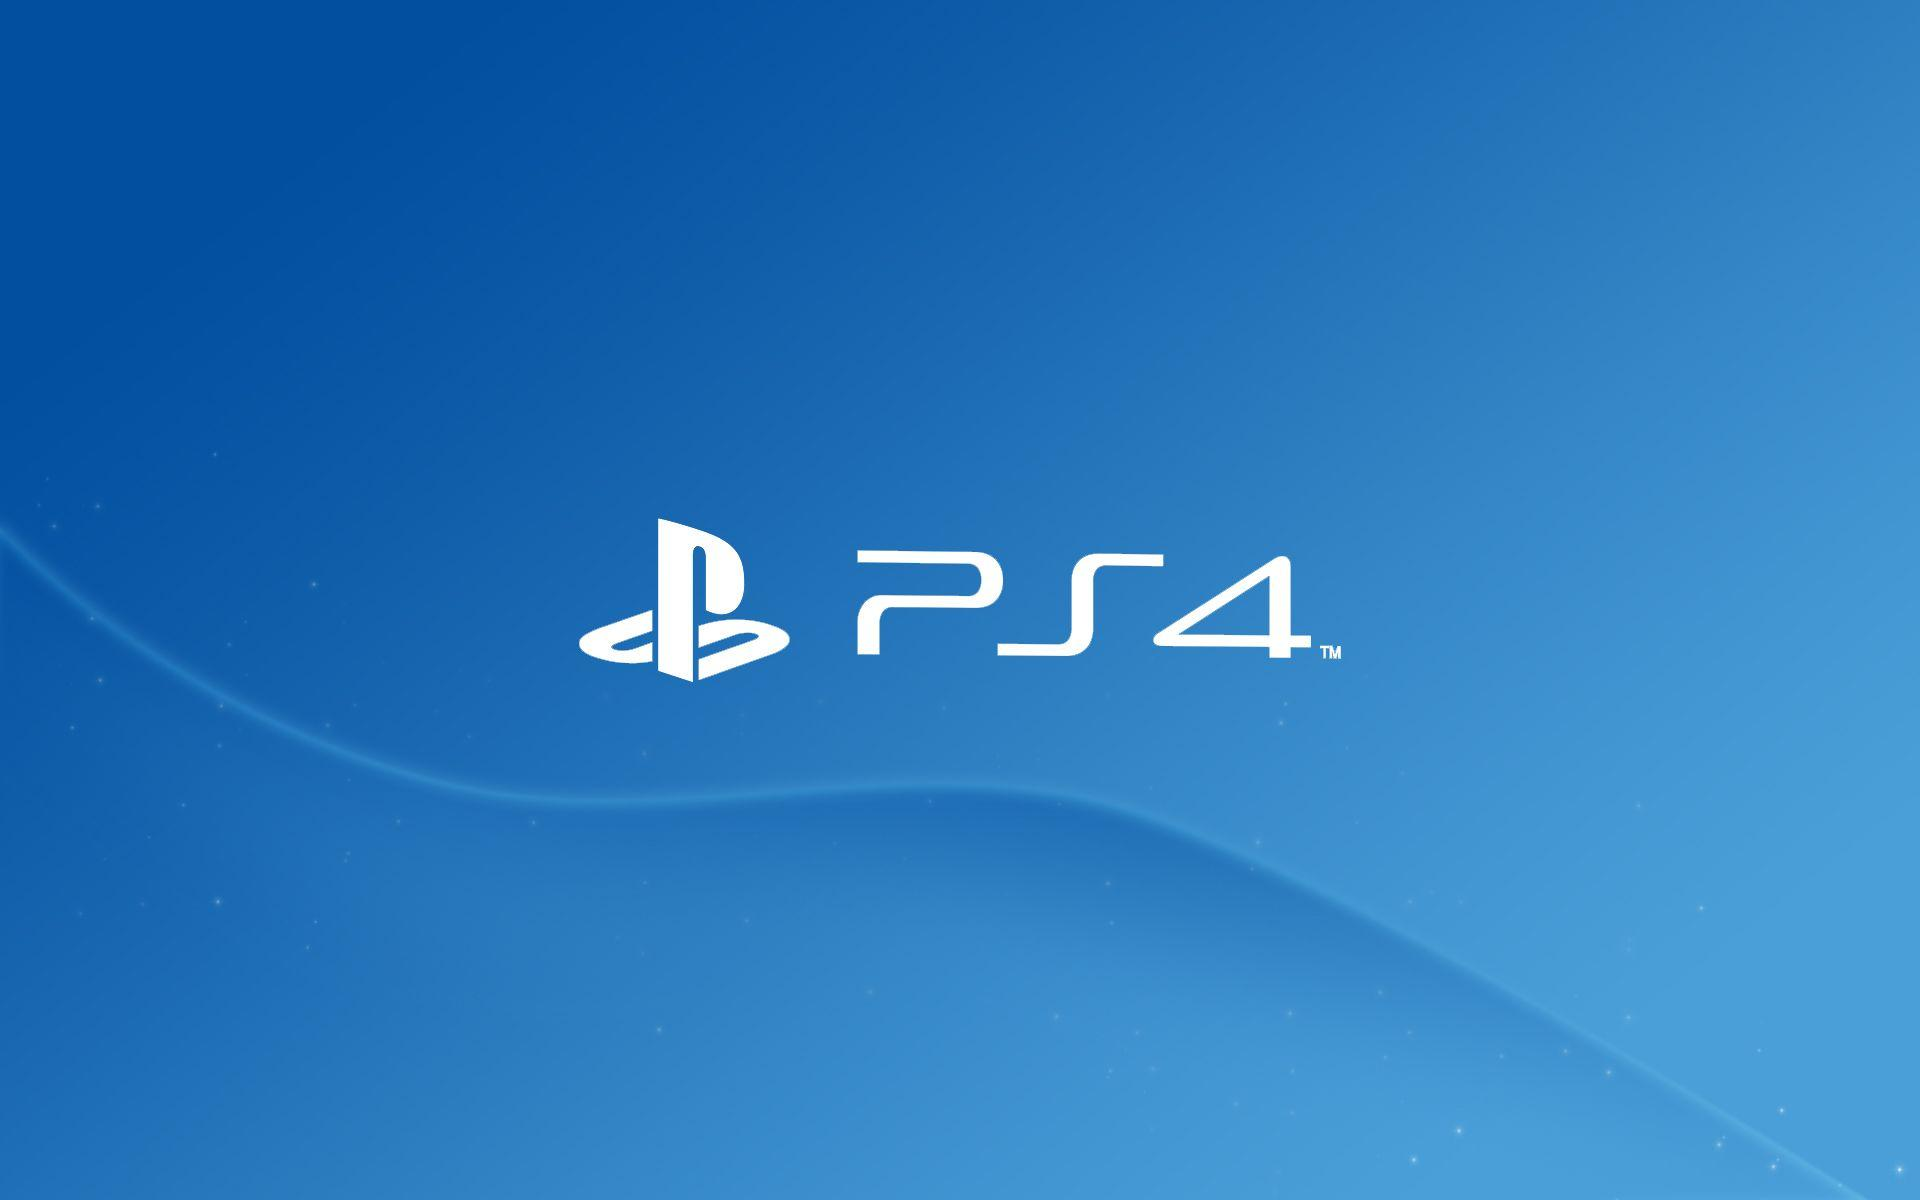 0x0 PlayStation Wallpapers